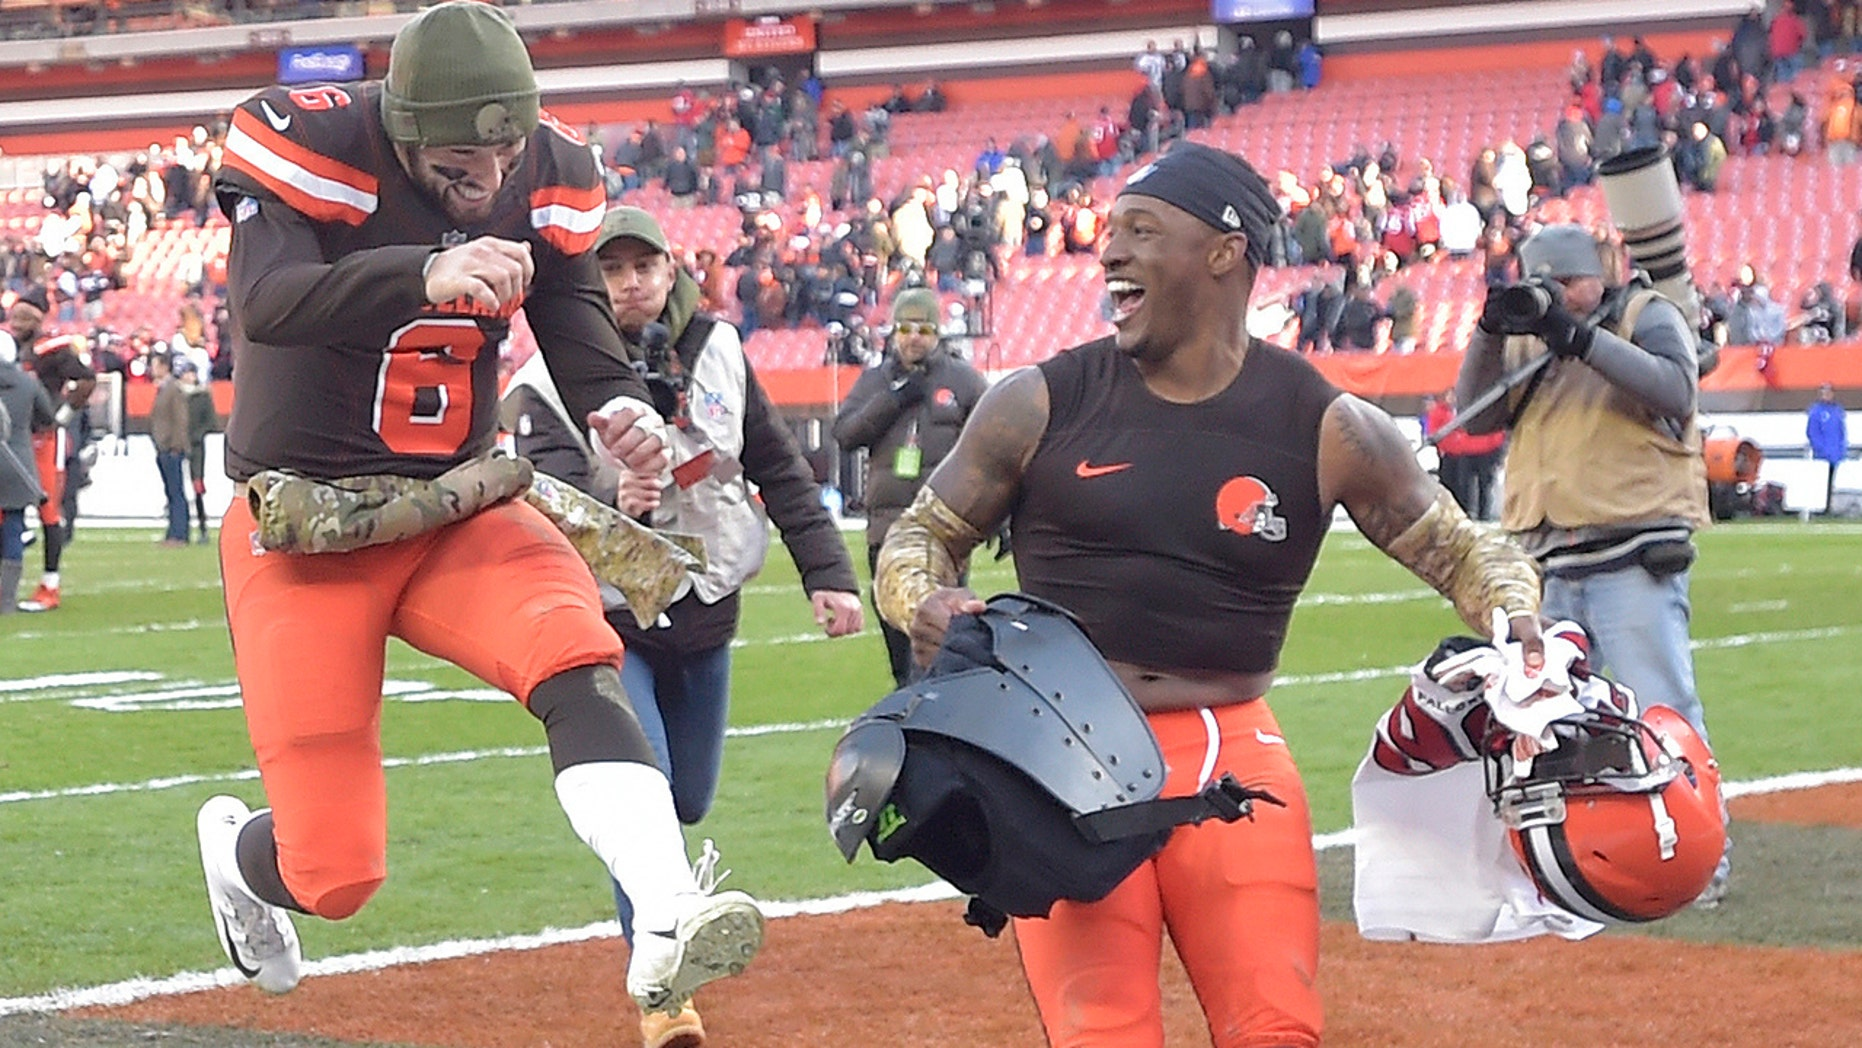 Baker Mayfield left and Damarious Randall both took jabs at their former head coach on Sunday